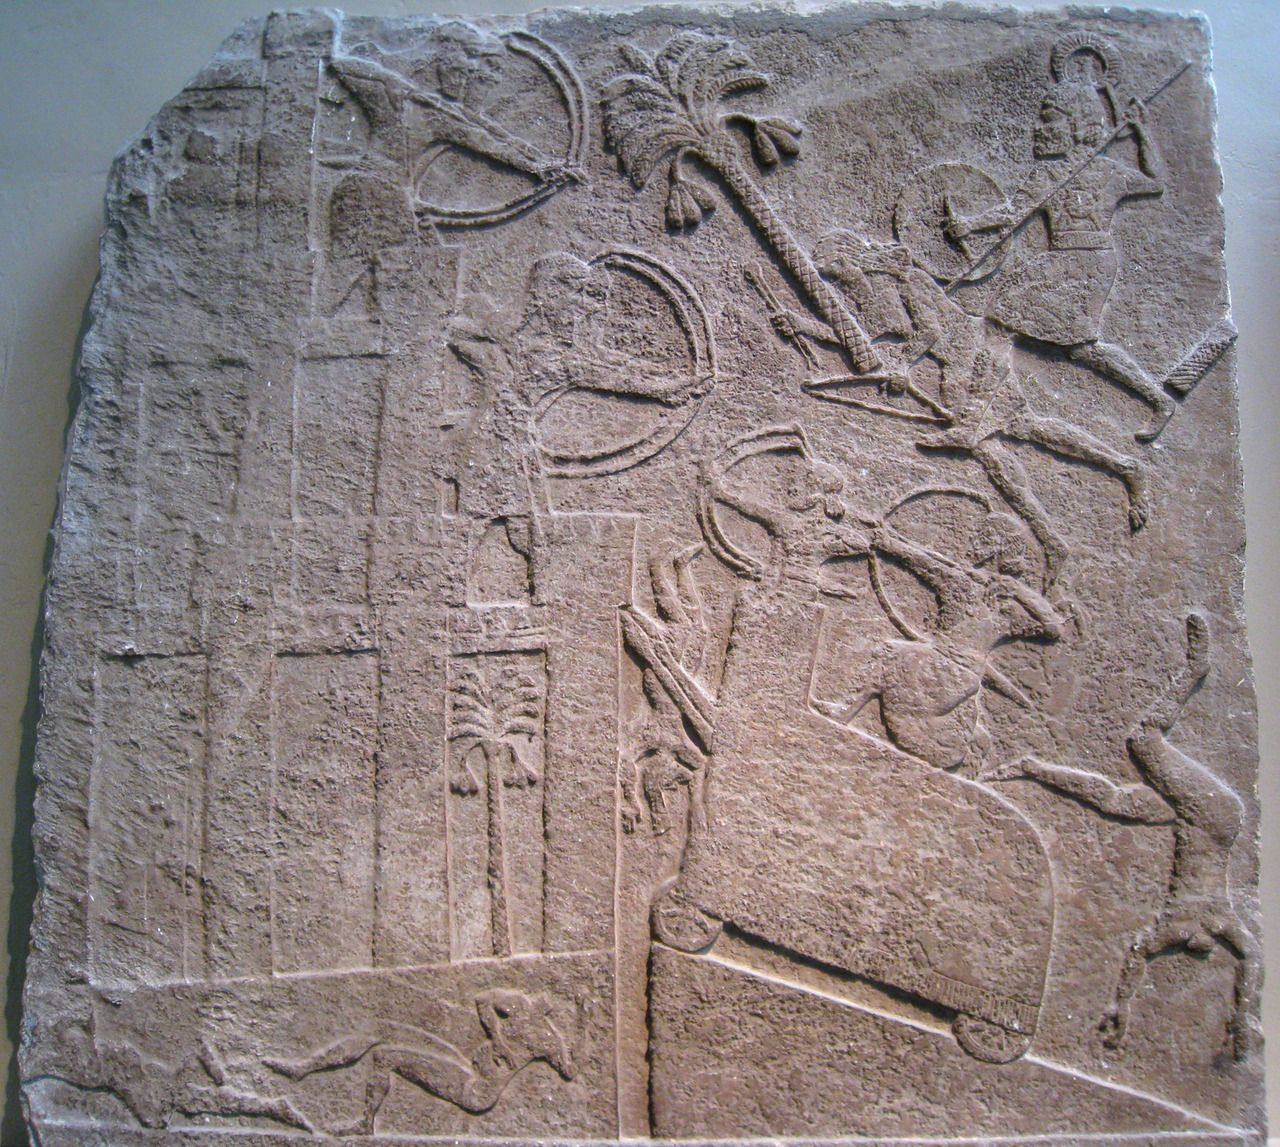 Assyrian Troops Attacking A Besieged City Most Likely In Mesopotamia Using A Battering Ram On A Siege Ram Ancient Discoveries Ancient Mesopotamia Mesopotamia